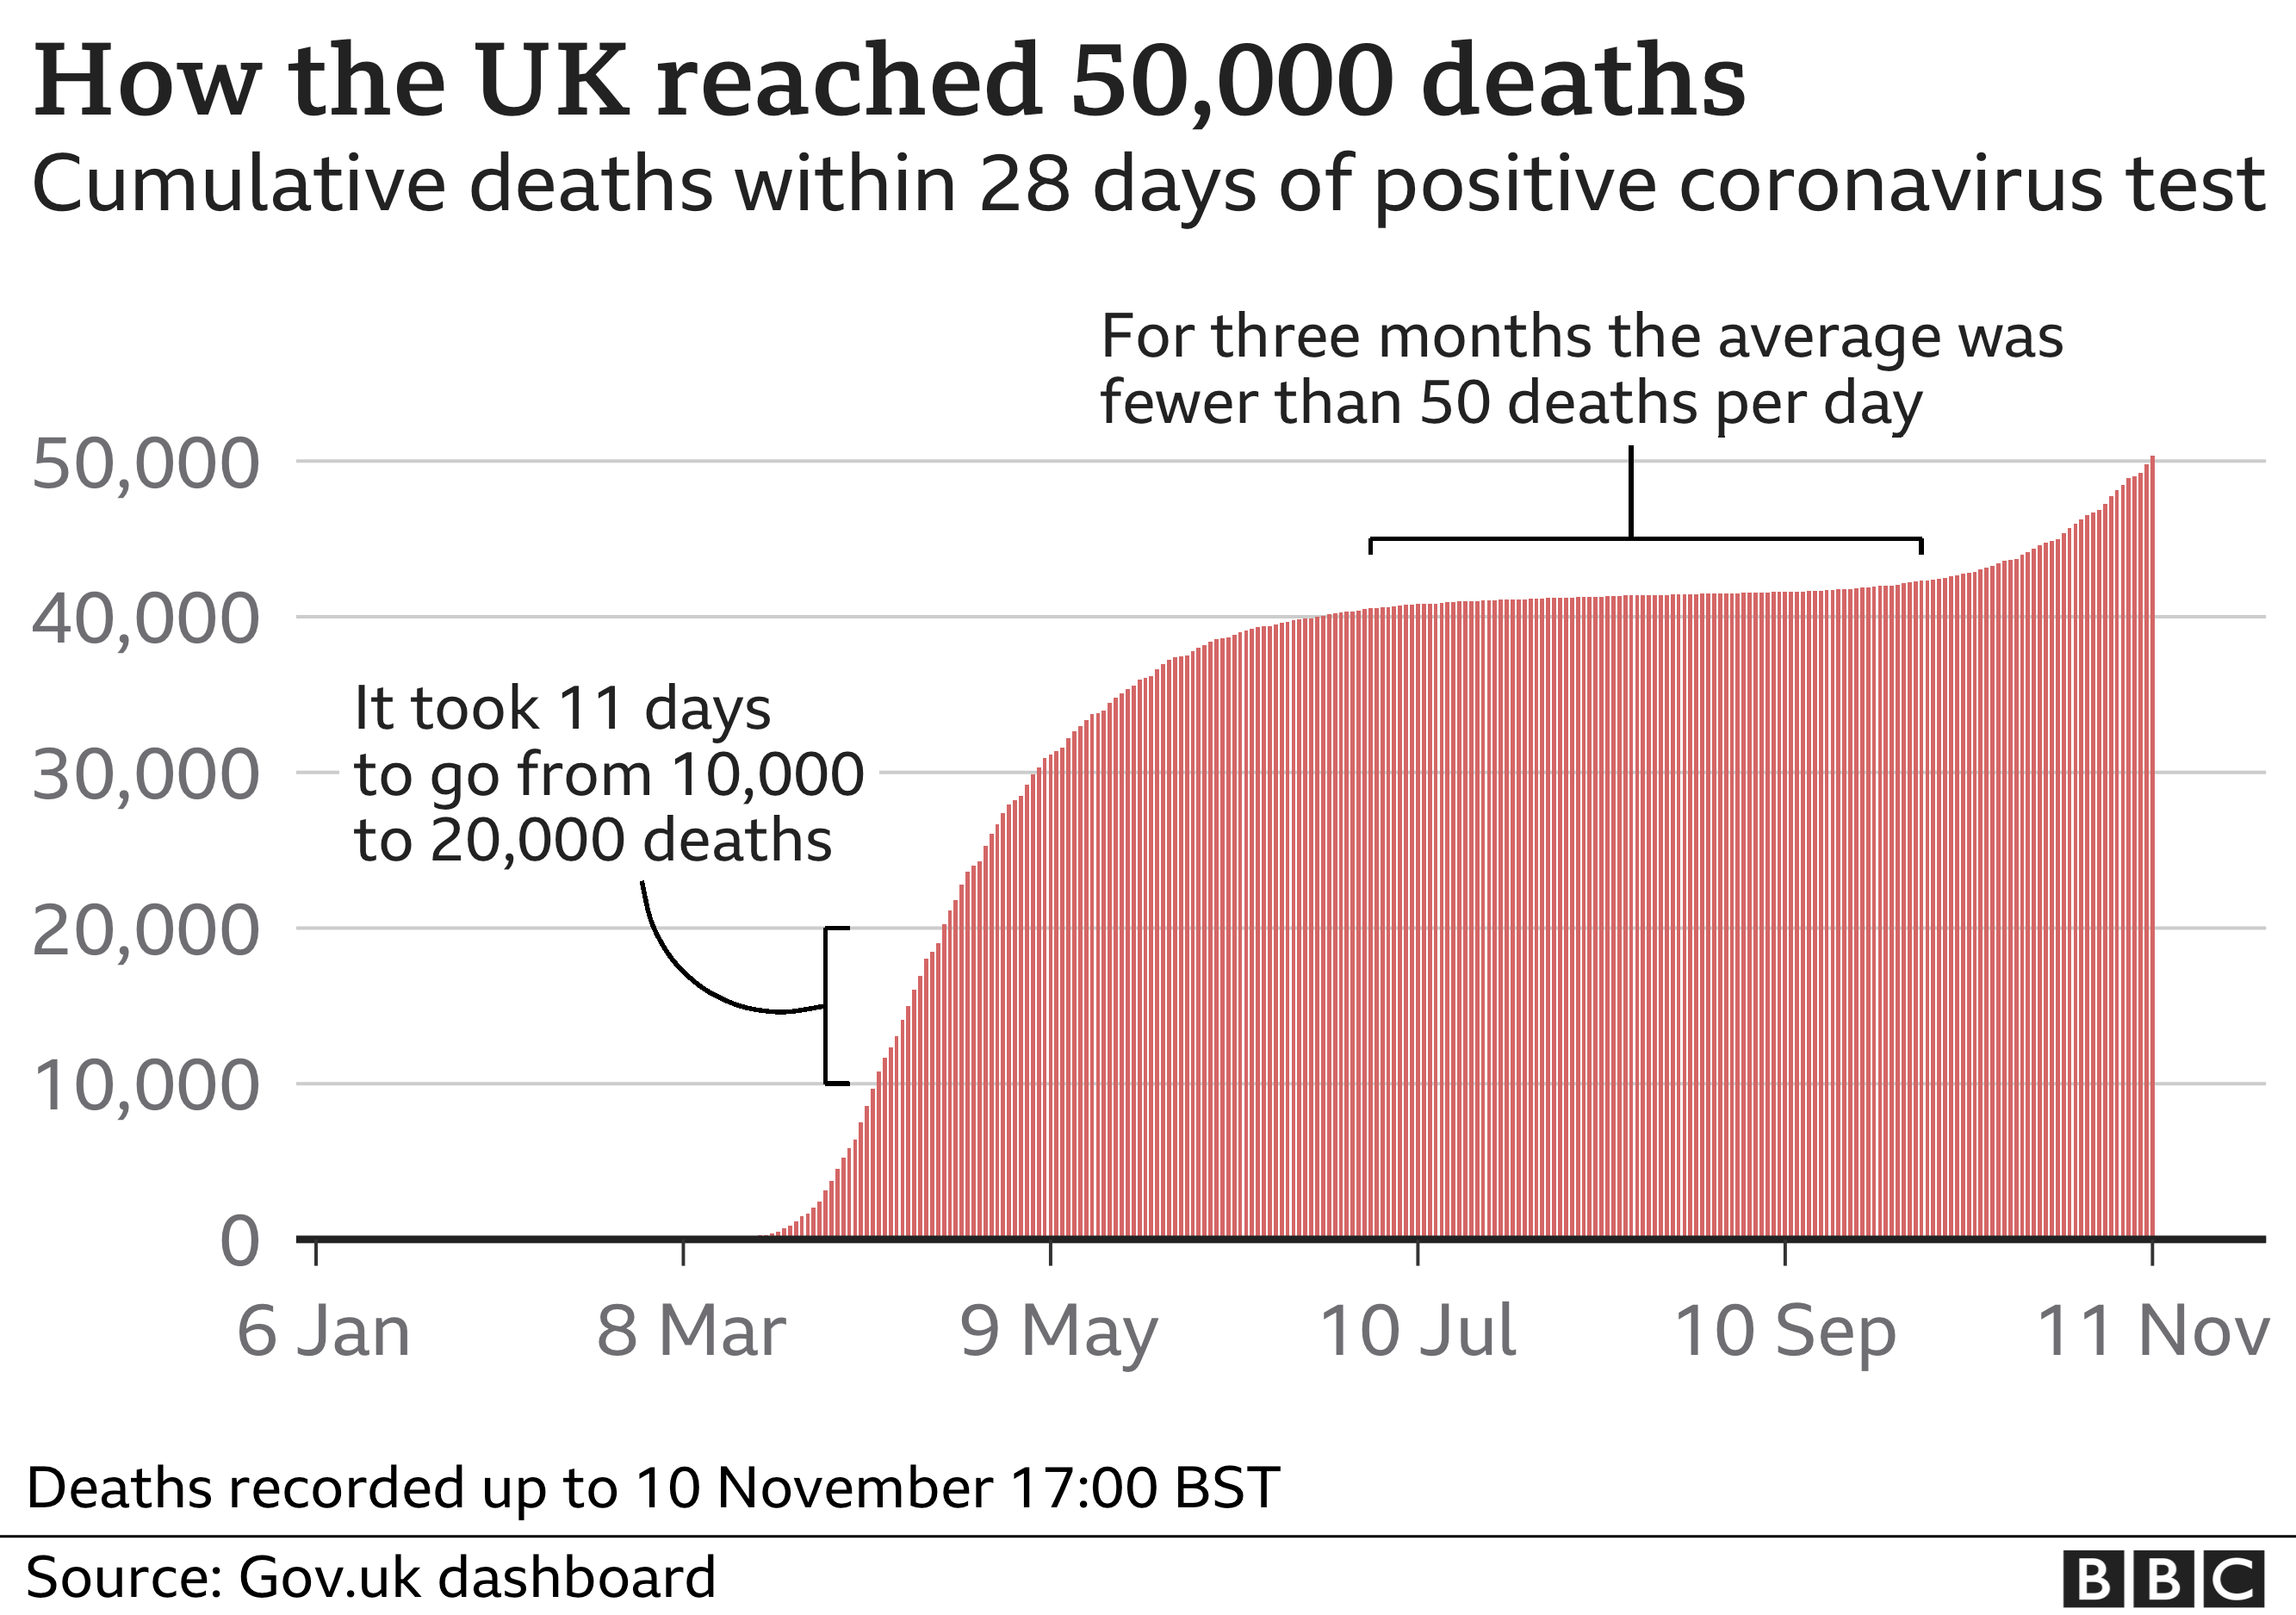 Chart showing the UK's cumulative death toll